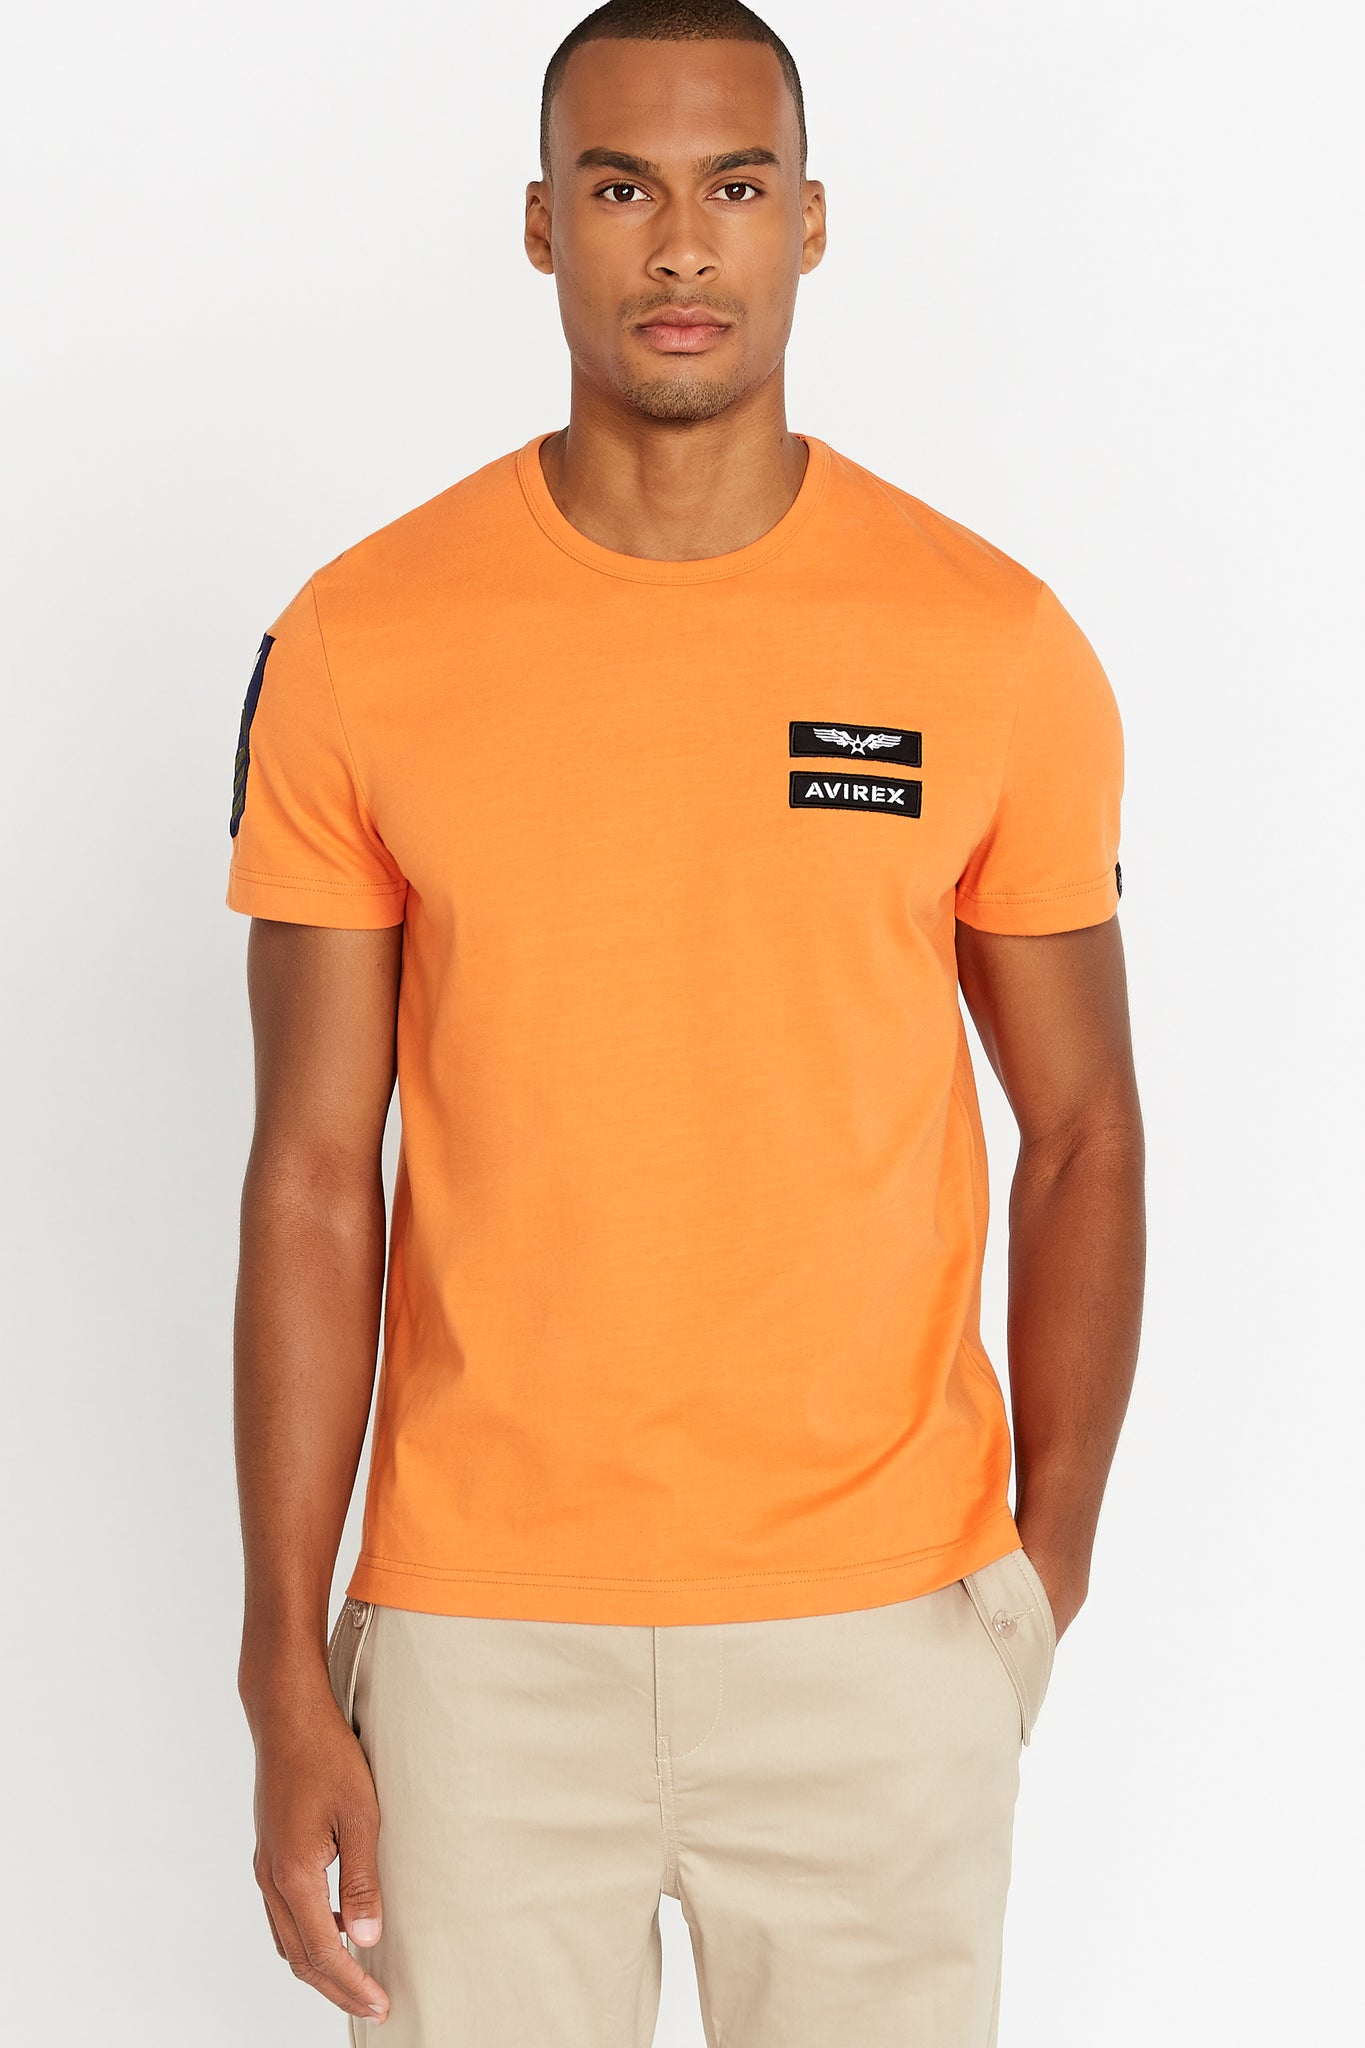 Men wearing a light orange short sleeve crew T-shirt with Avirex logo and letters patches on left chest and a patch on right sleeve